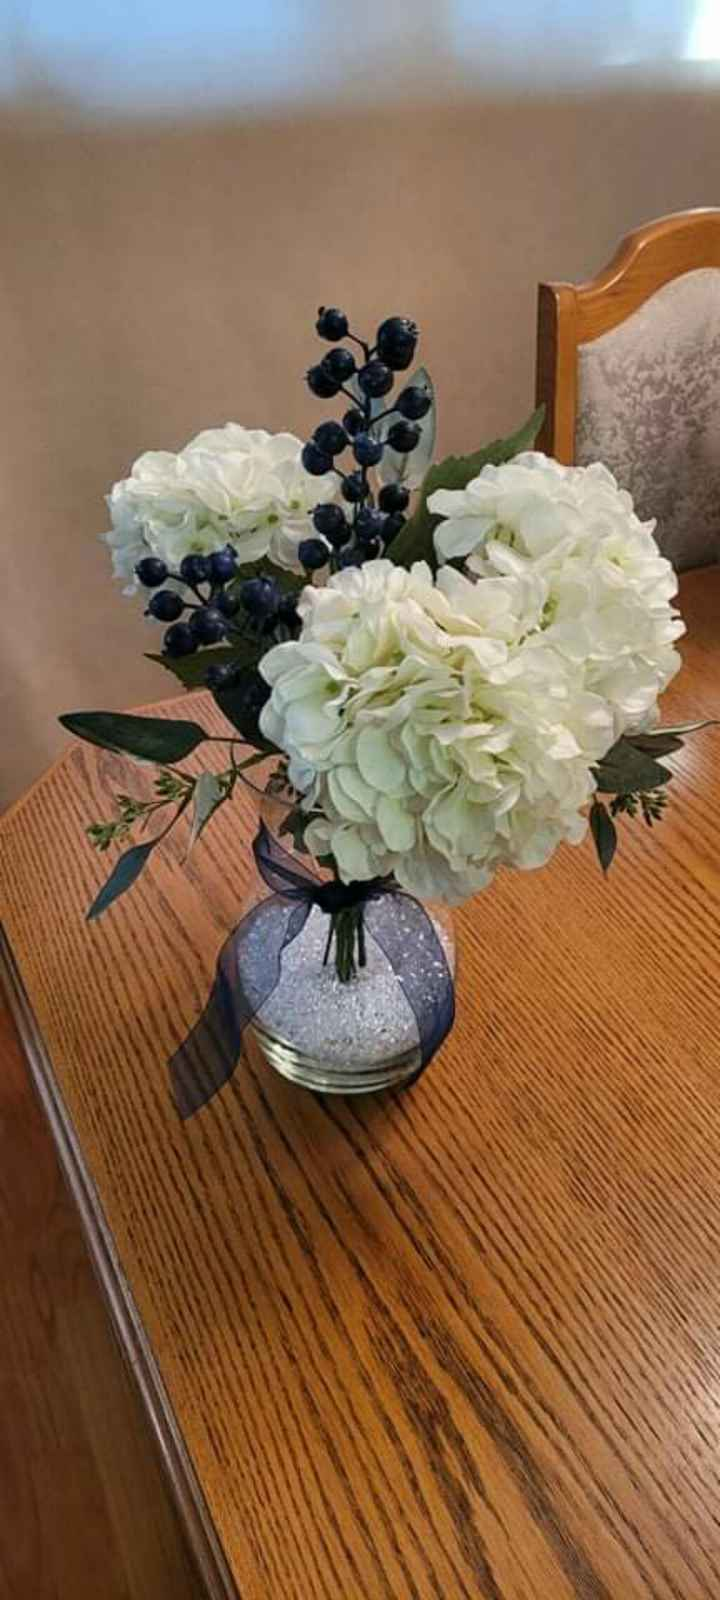 Real vs Faux Flowers for Centrepieces - 3